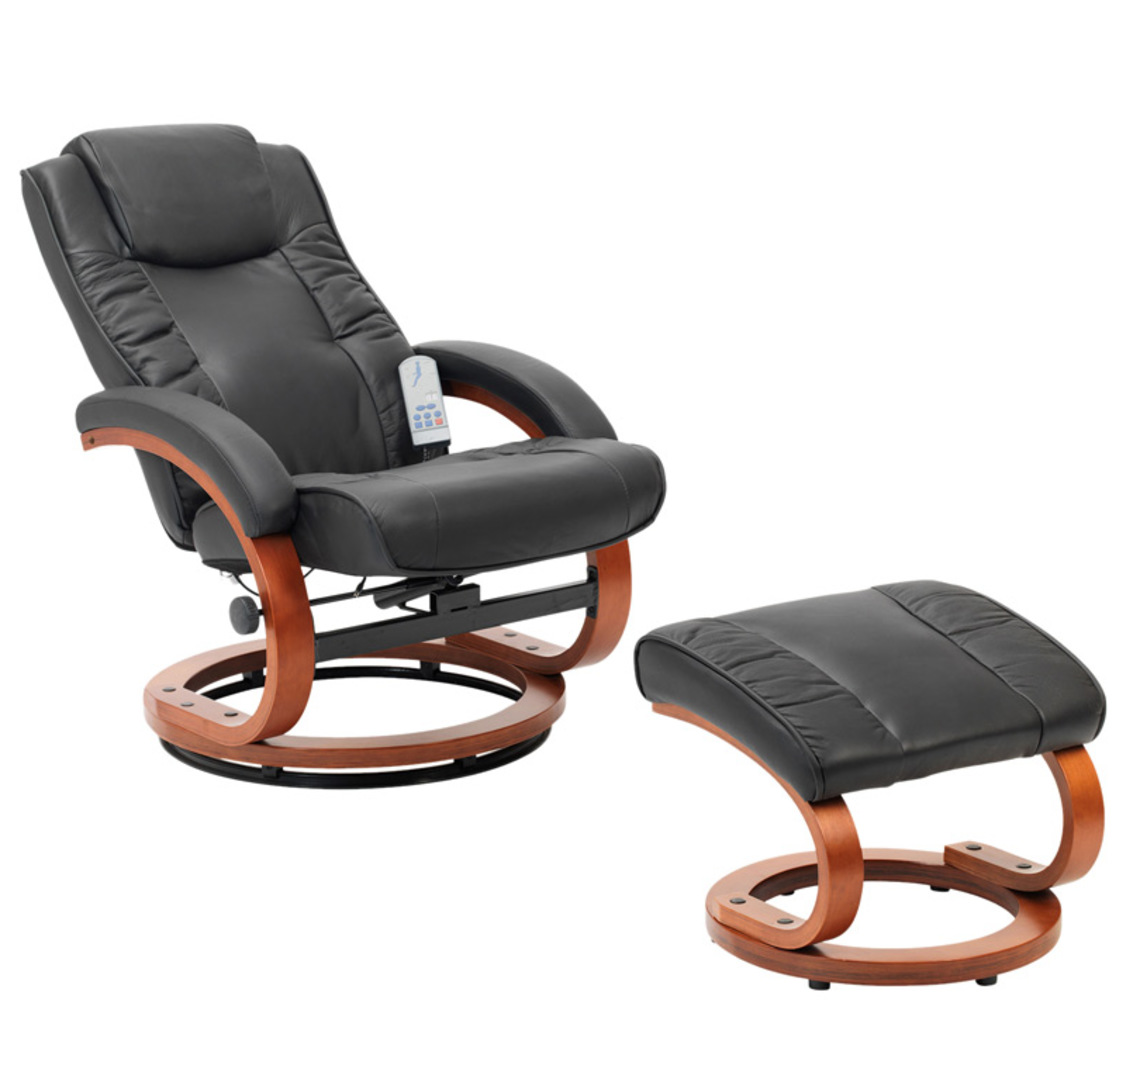 Salso Massage Chair World Scooters Manchester